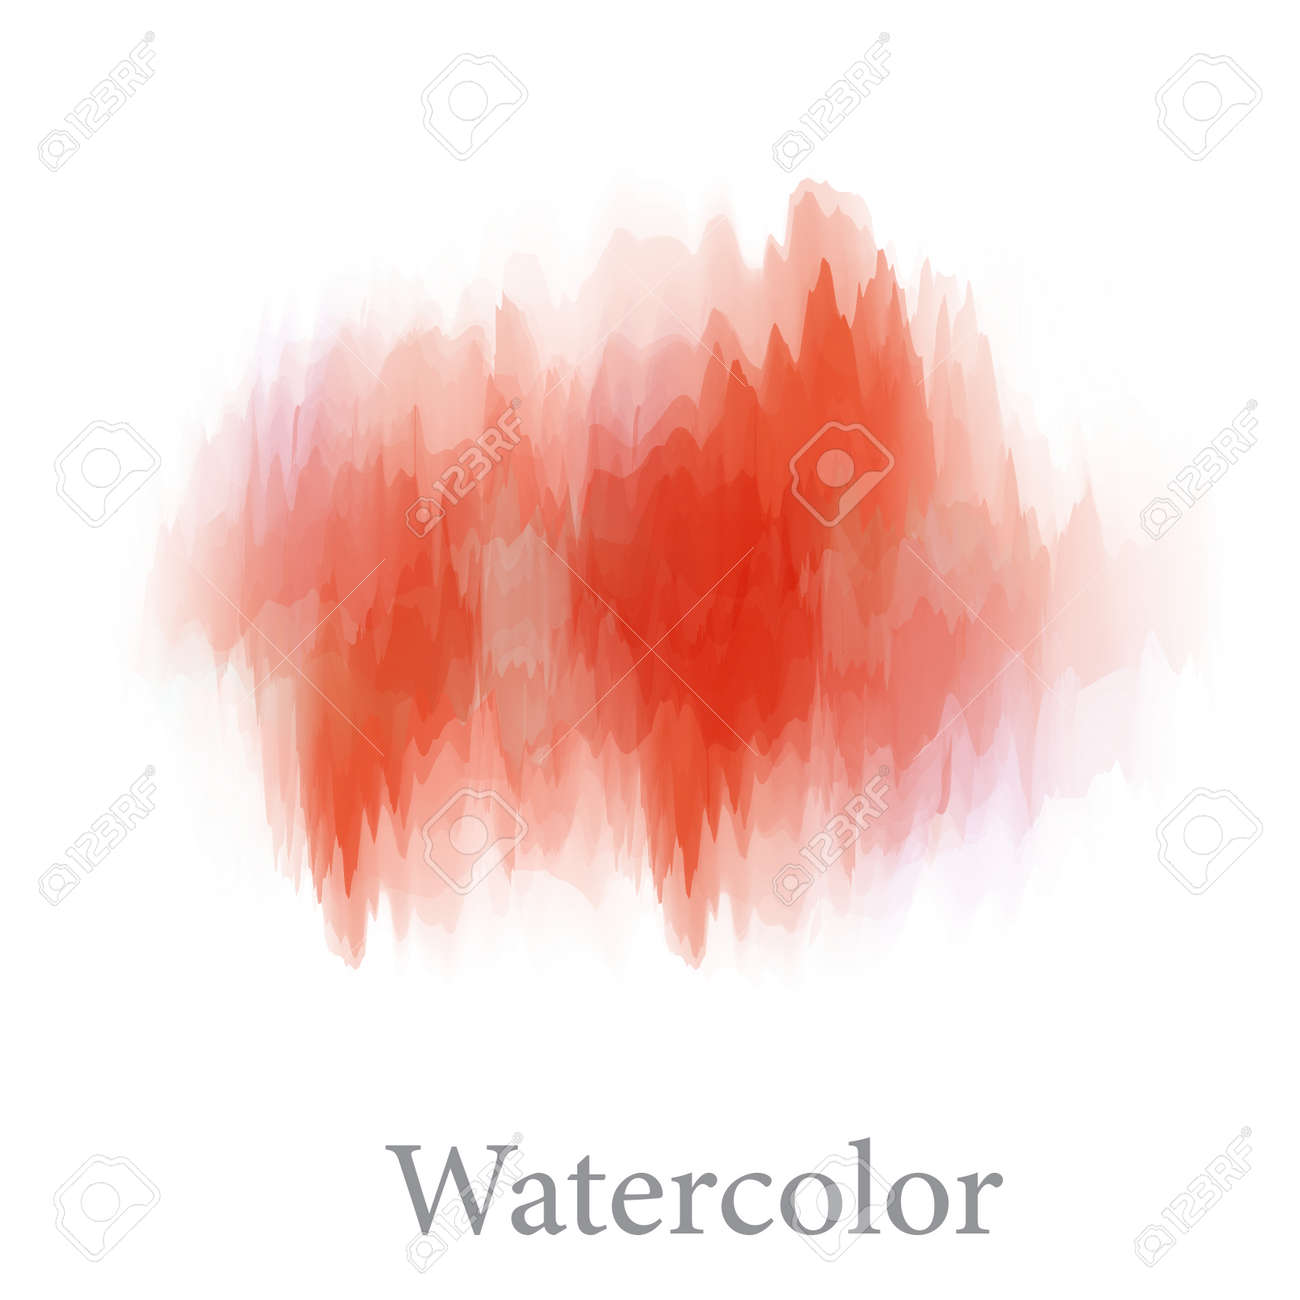 Abstract watercolor hand paint texture, isolated on white background, vector - 125660855